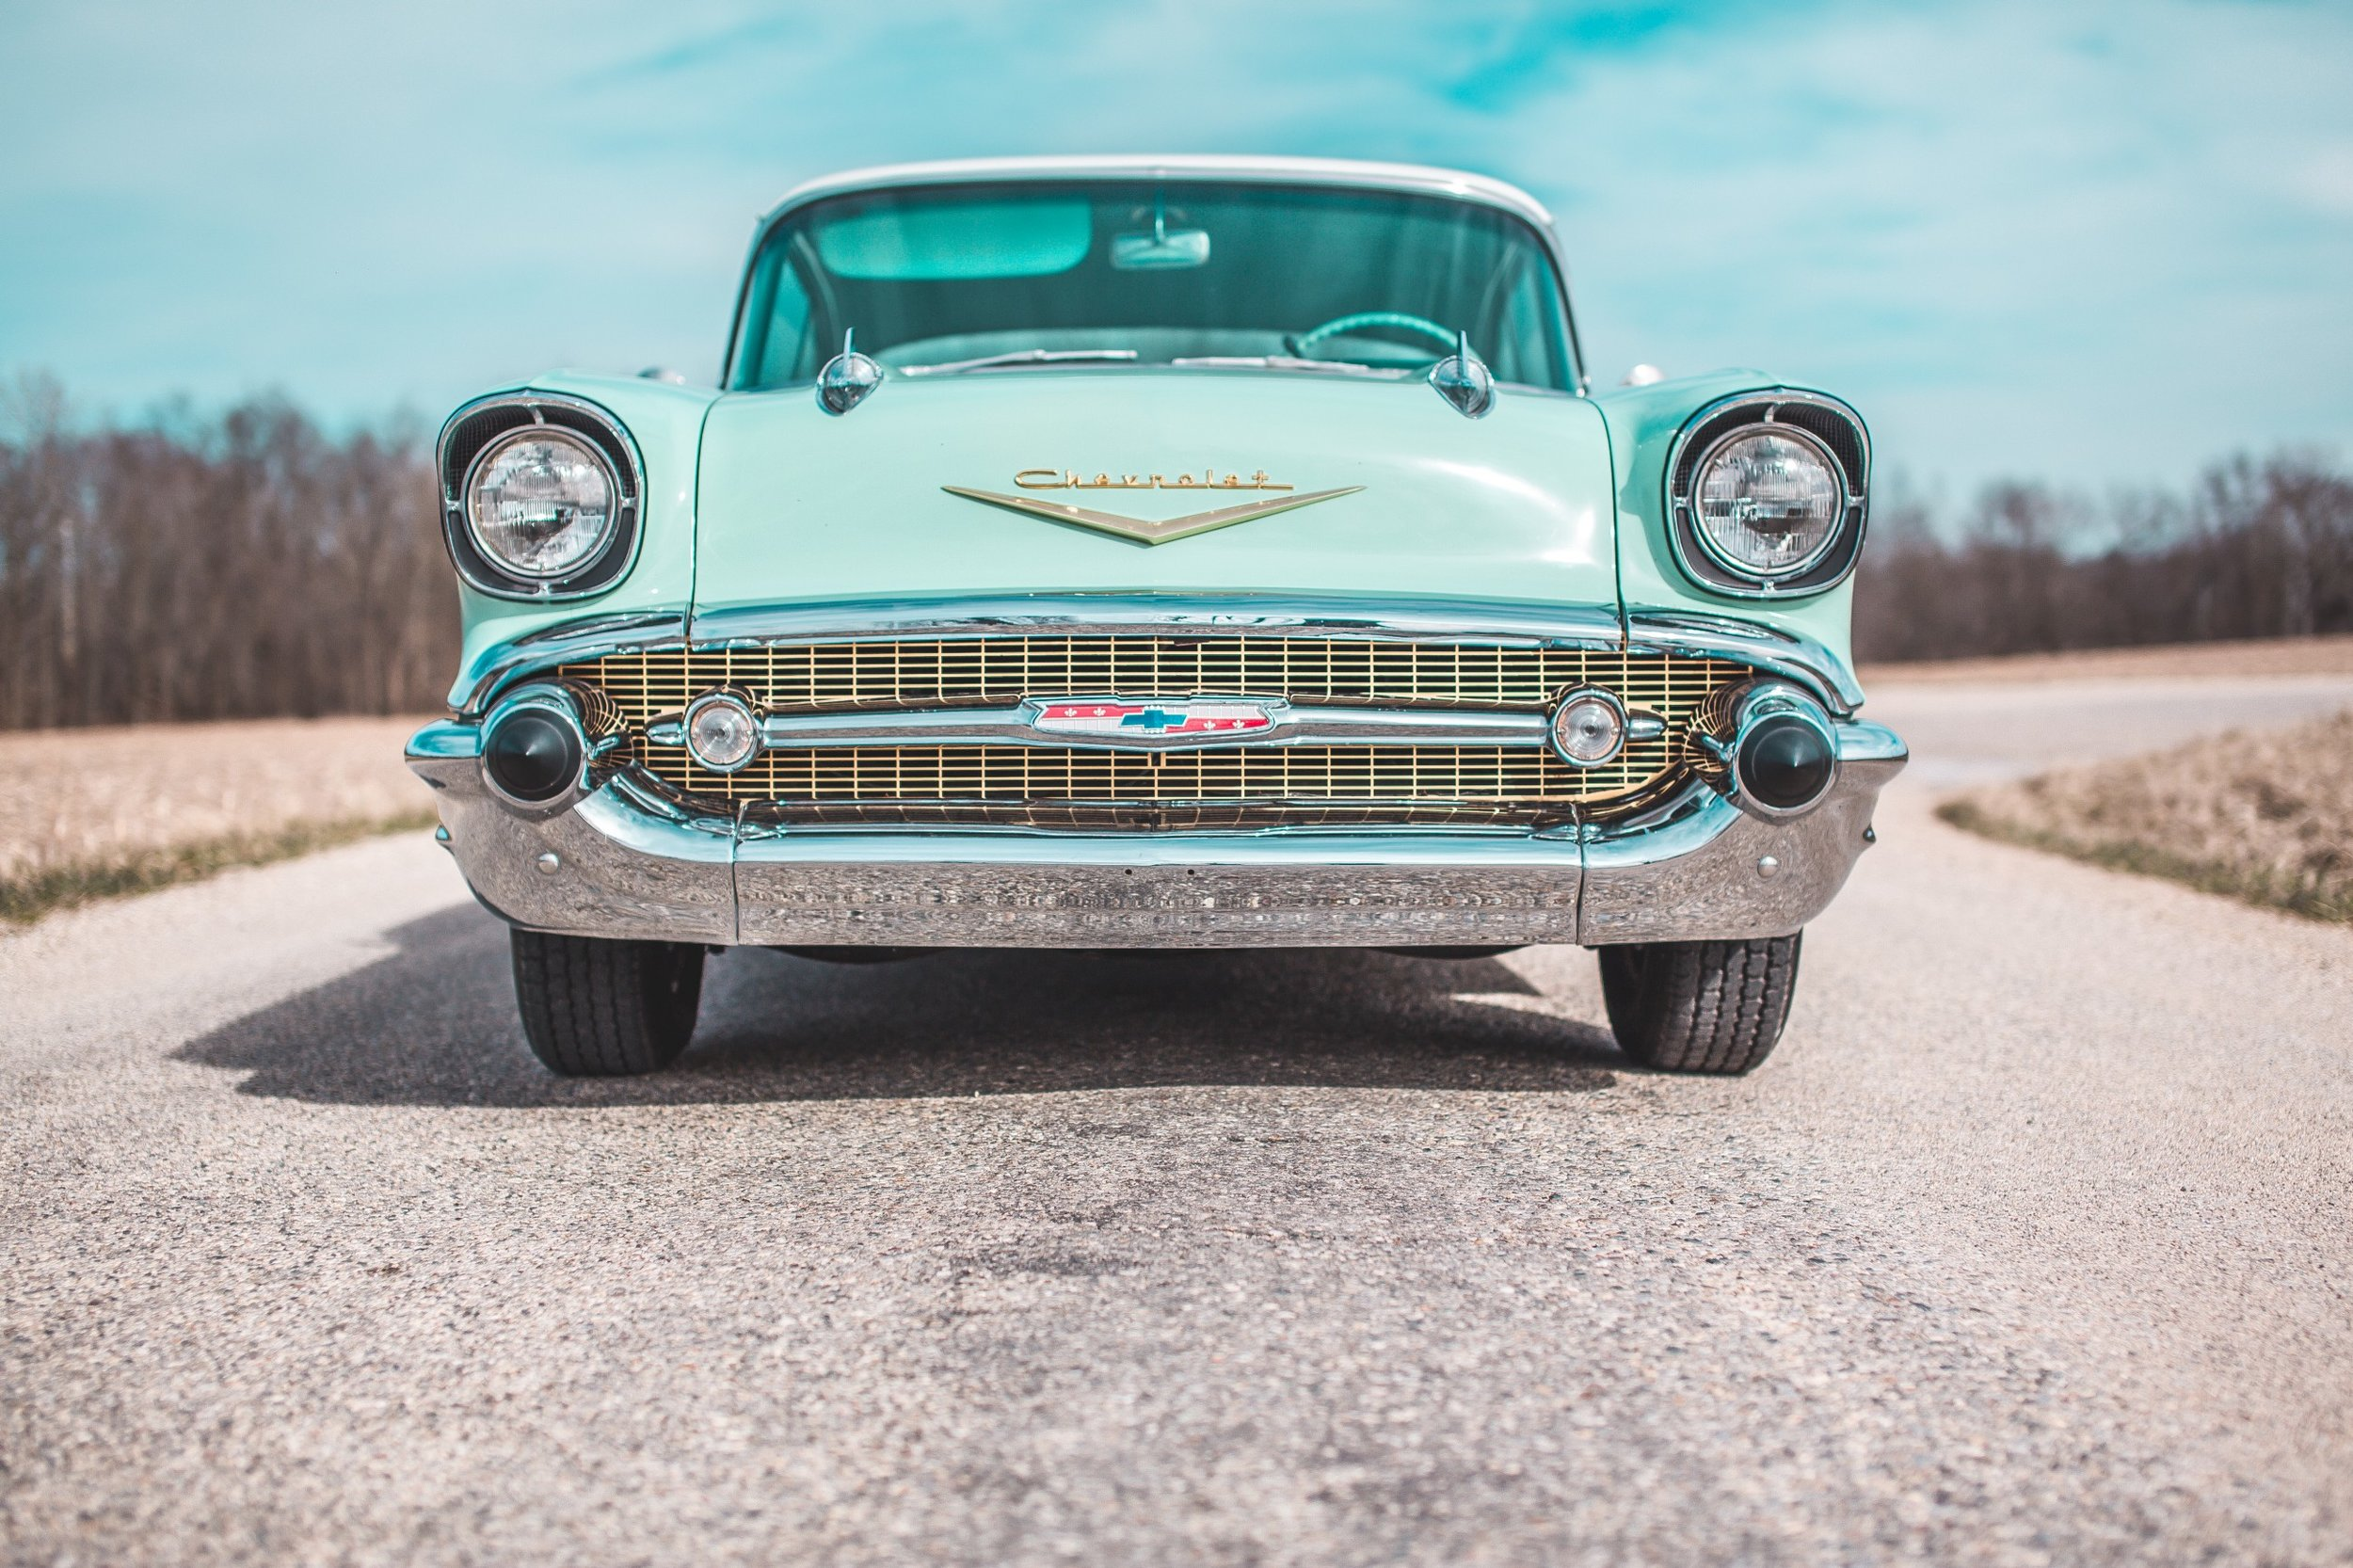 """Retro"" Photo by  Court Prather  on  Unsplash"